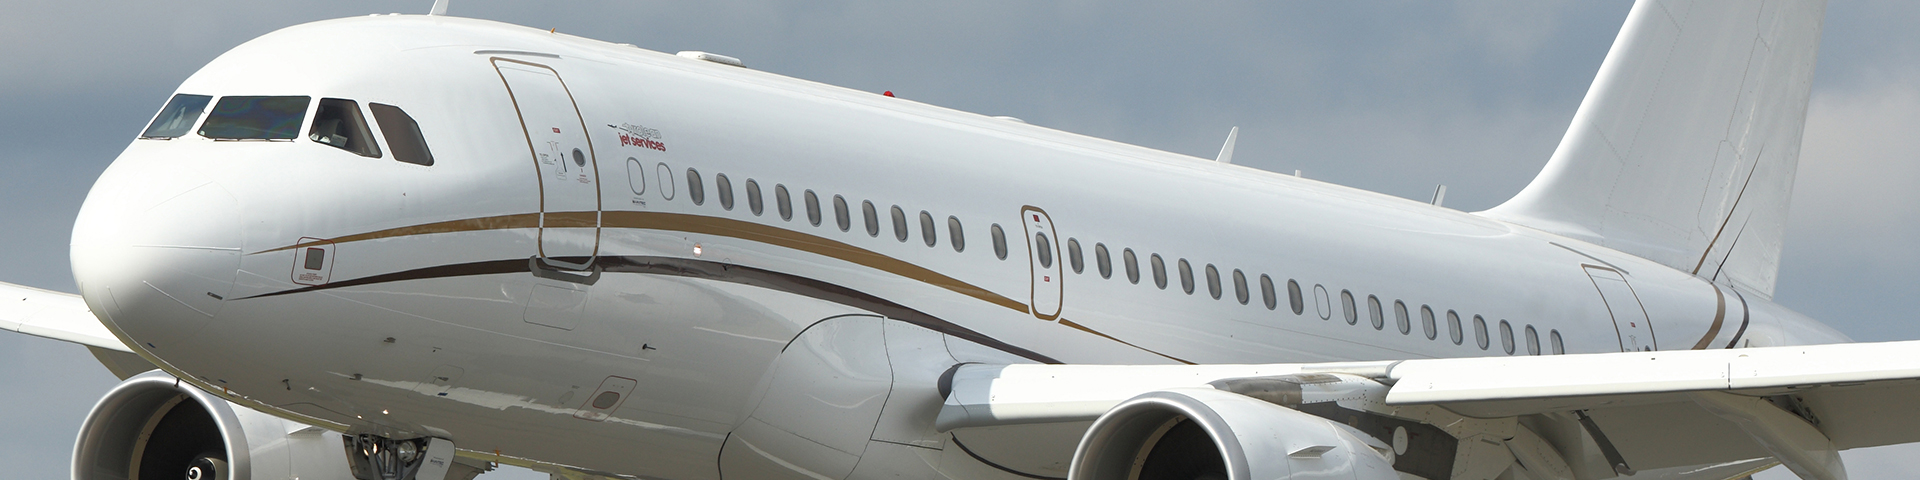 Airbus ACJ3191 - Airbus 319 Corporate Jet